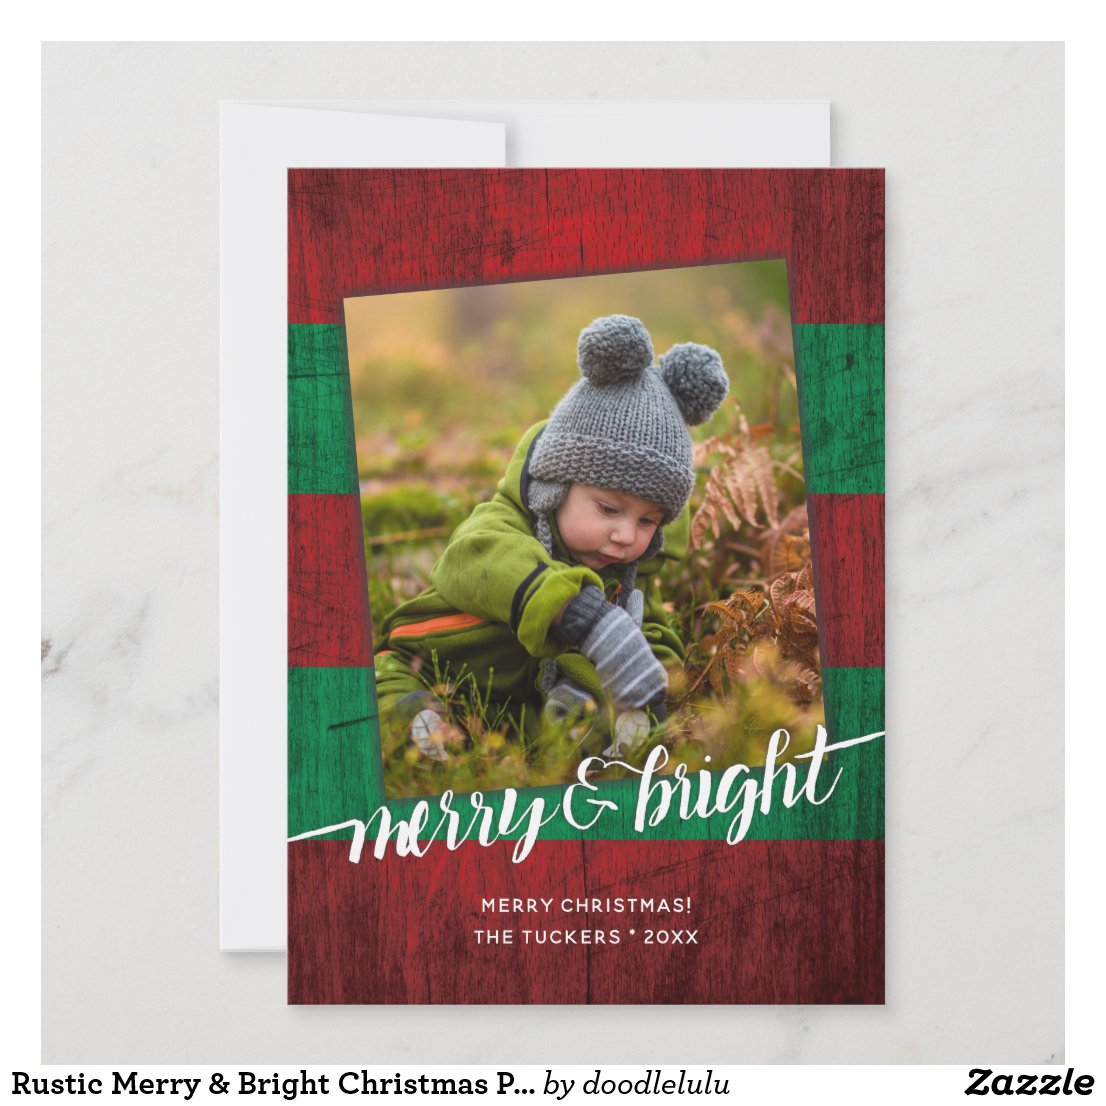 Rustic Merry & Bright Christmas Photo Wood Holiday Card